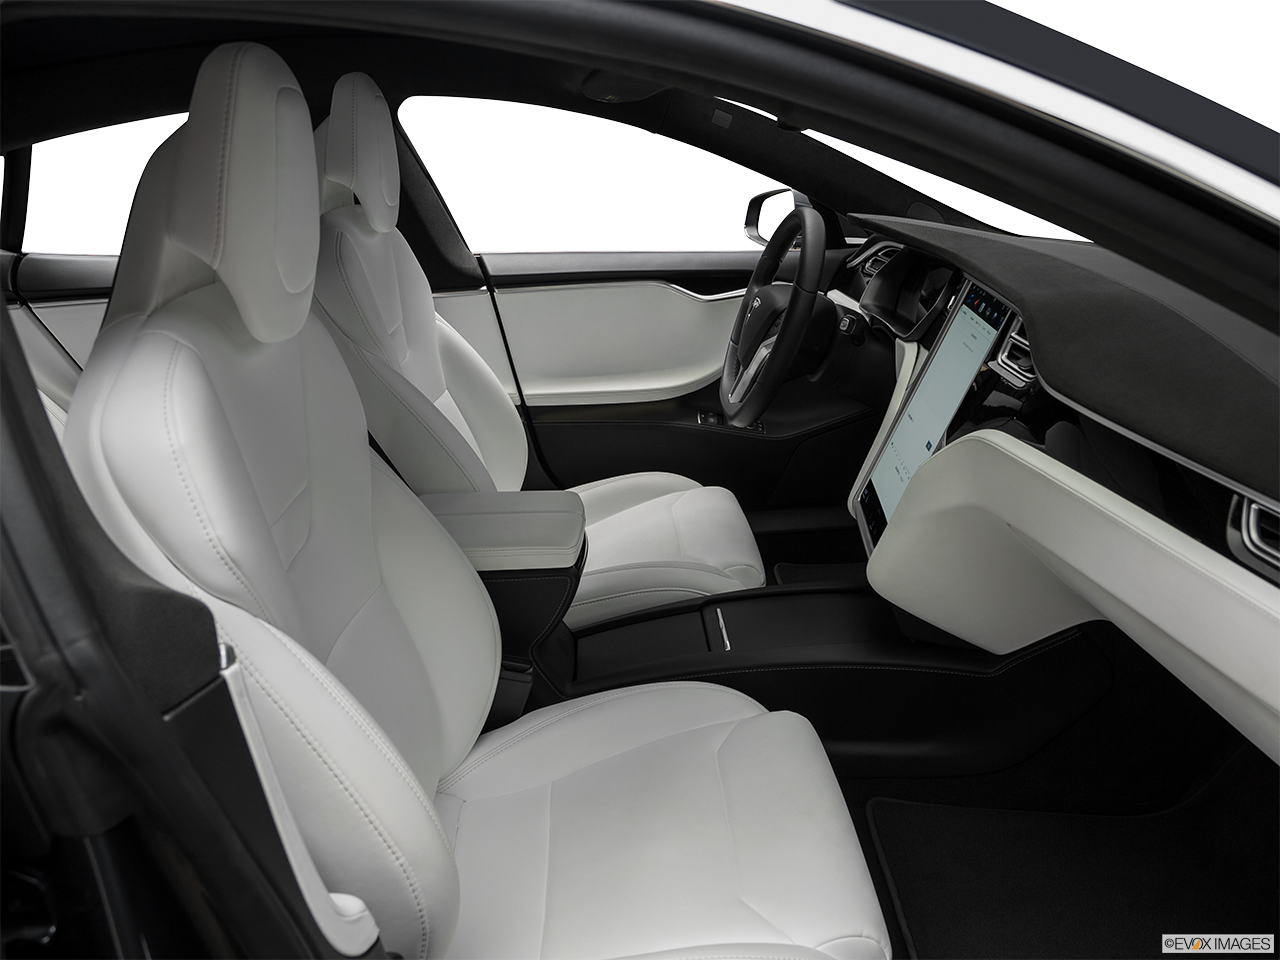 Interior view of the Tesla Model S